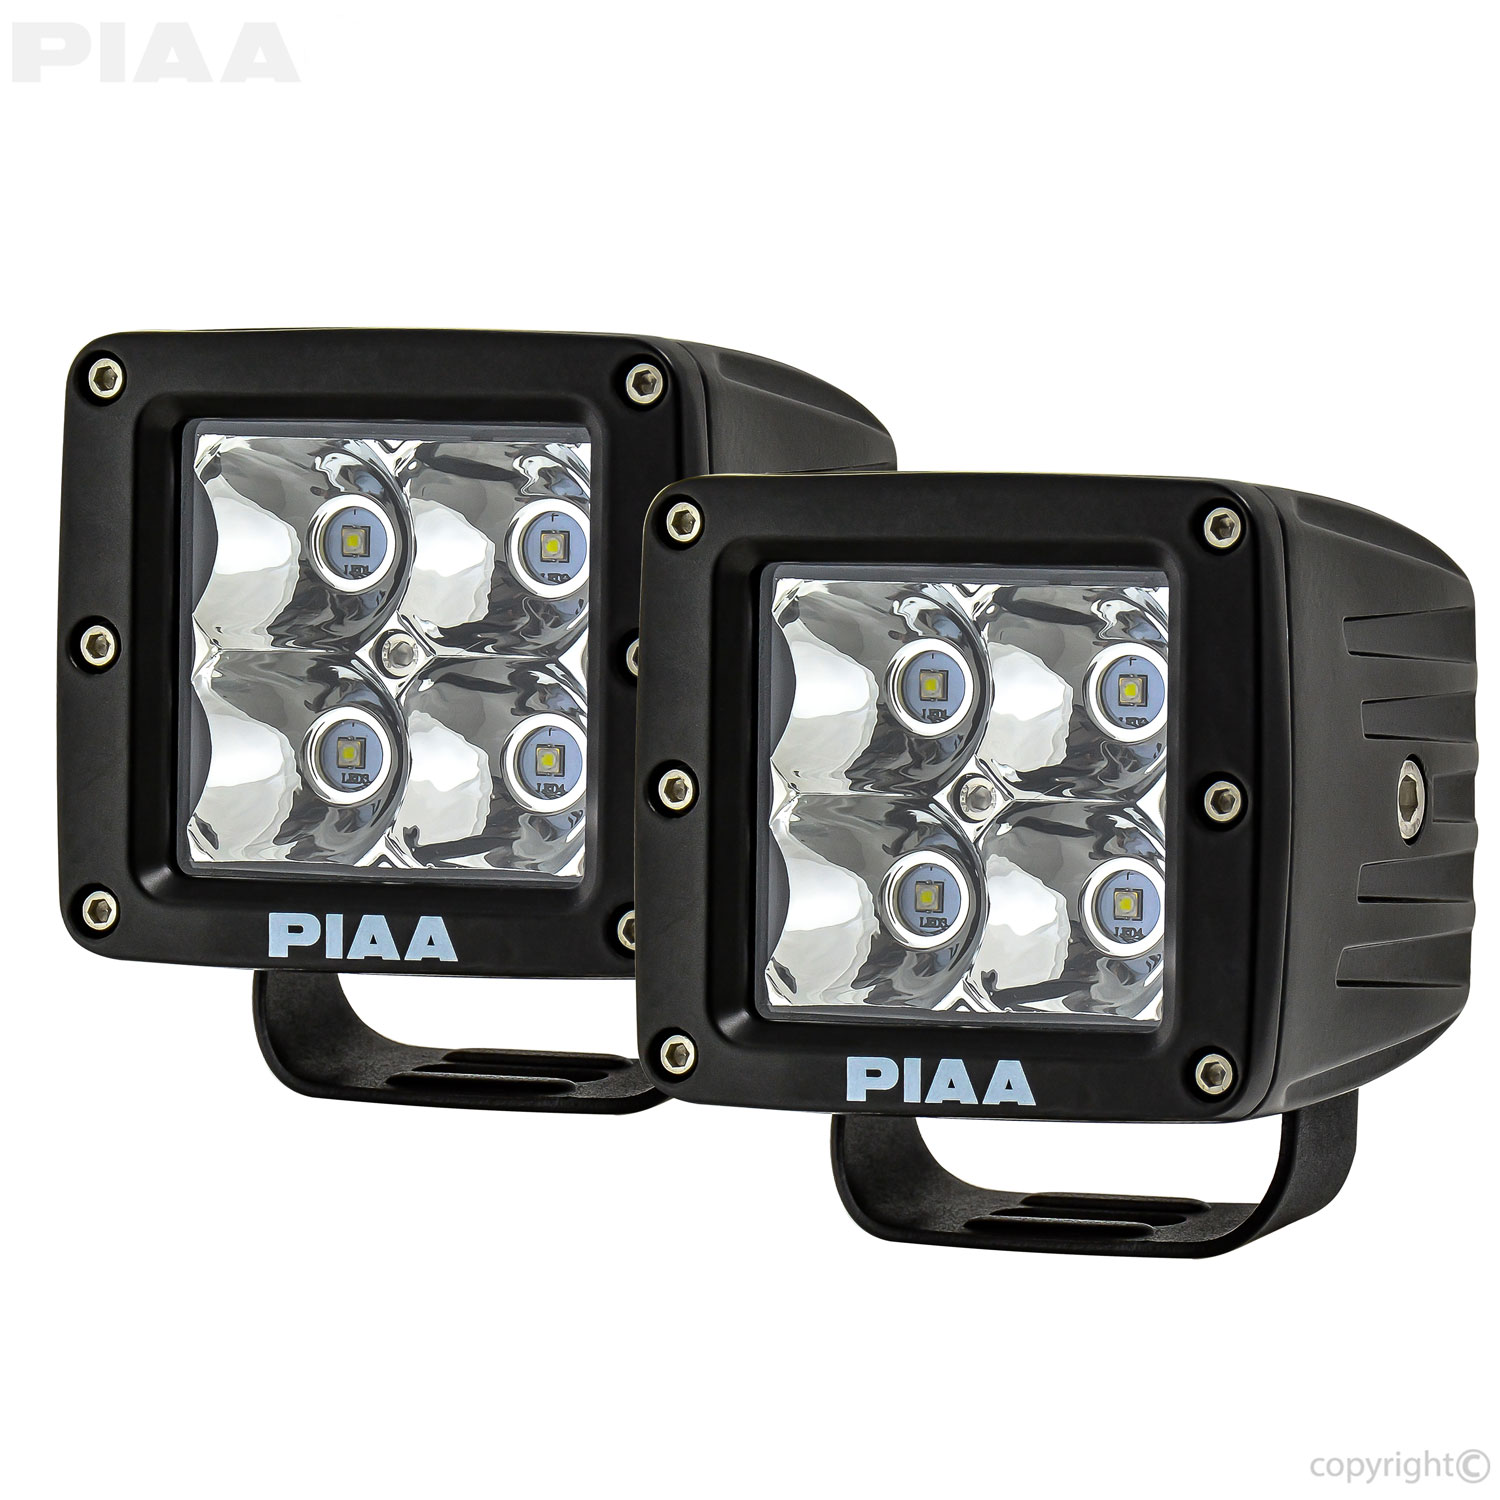 piaa 26 06603 quad dual hr?bw=1000&w=1000&bh=1000&h=1000 piaa automotive lamps piaa pl5fb wiring diagram at crackthecode.co